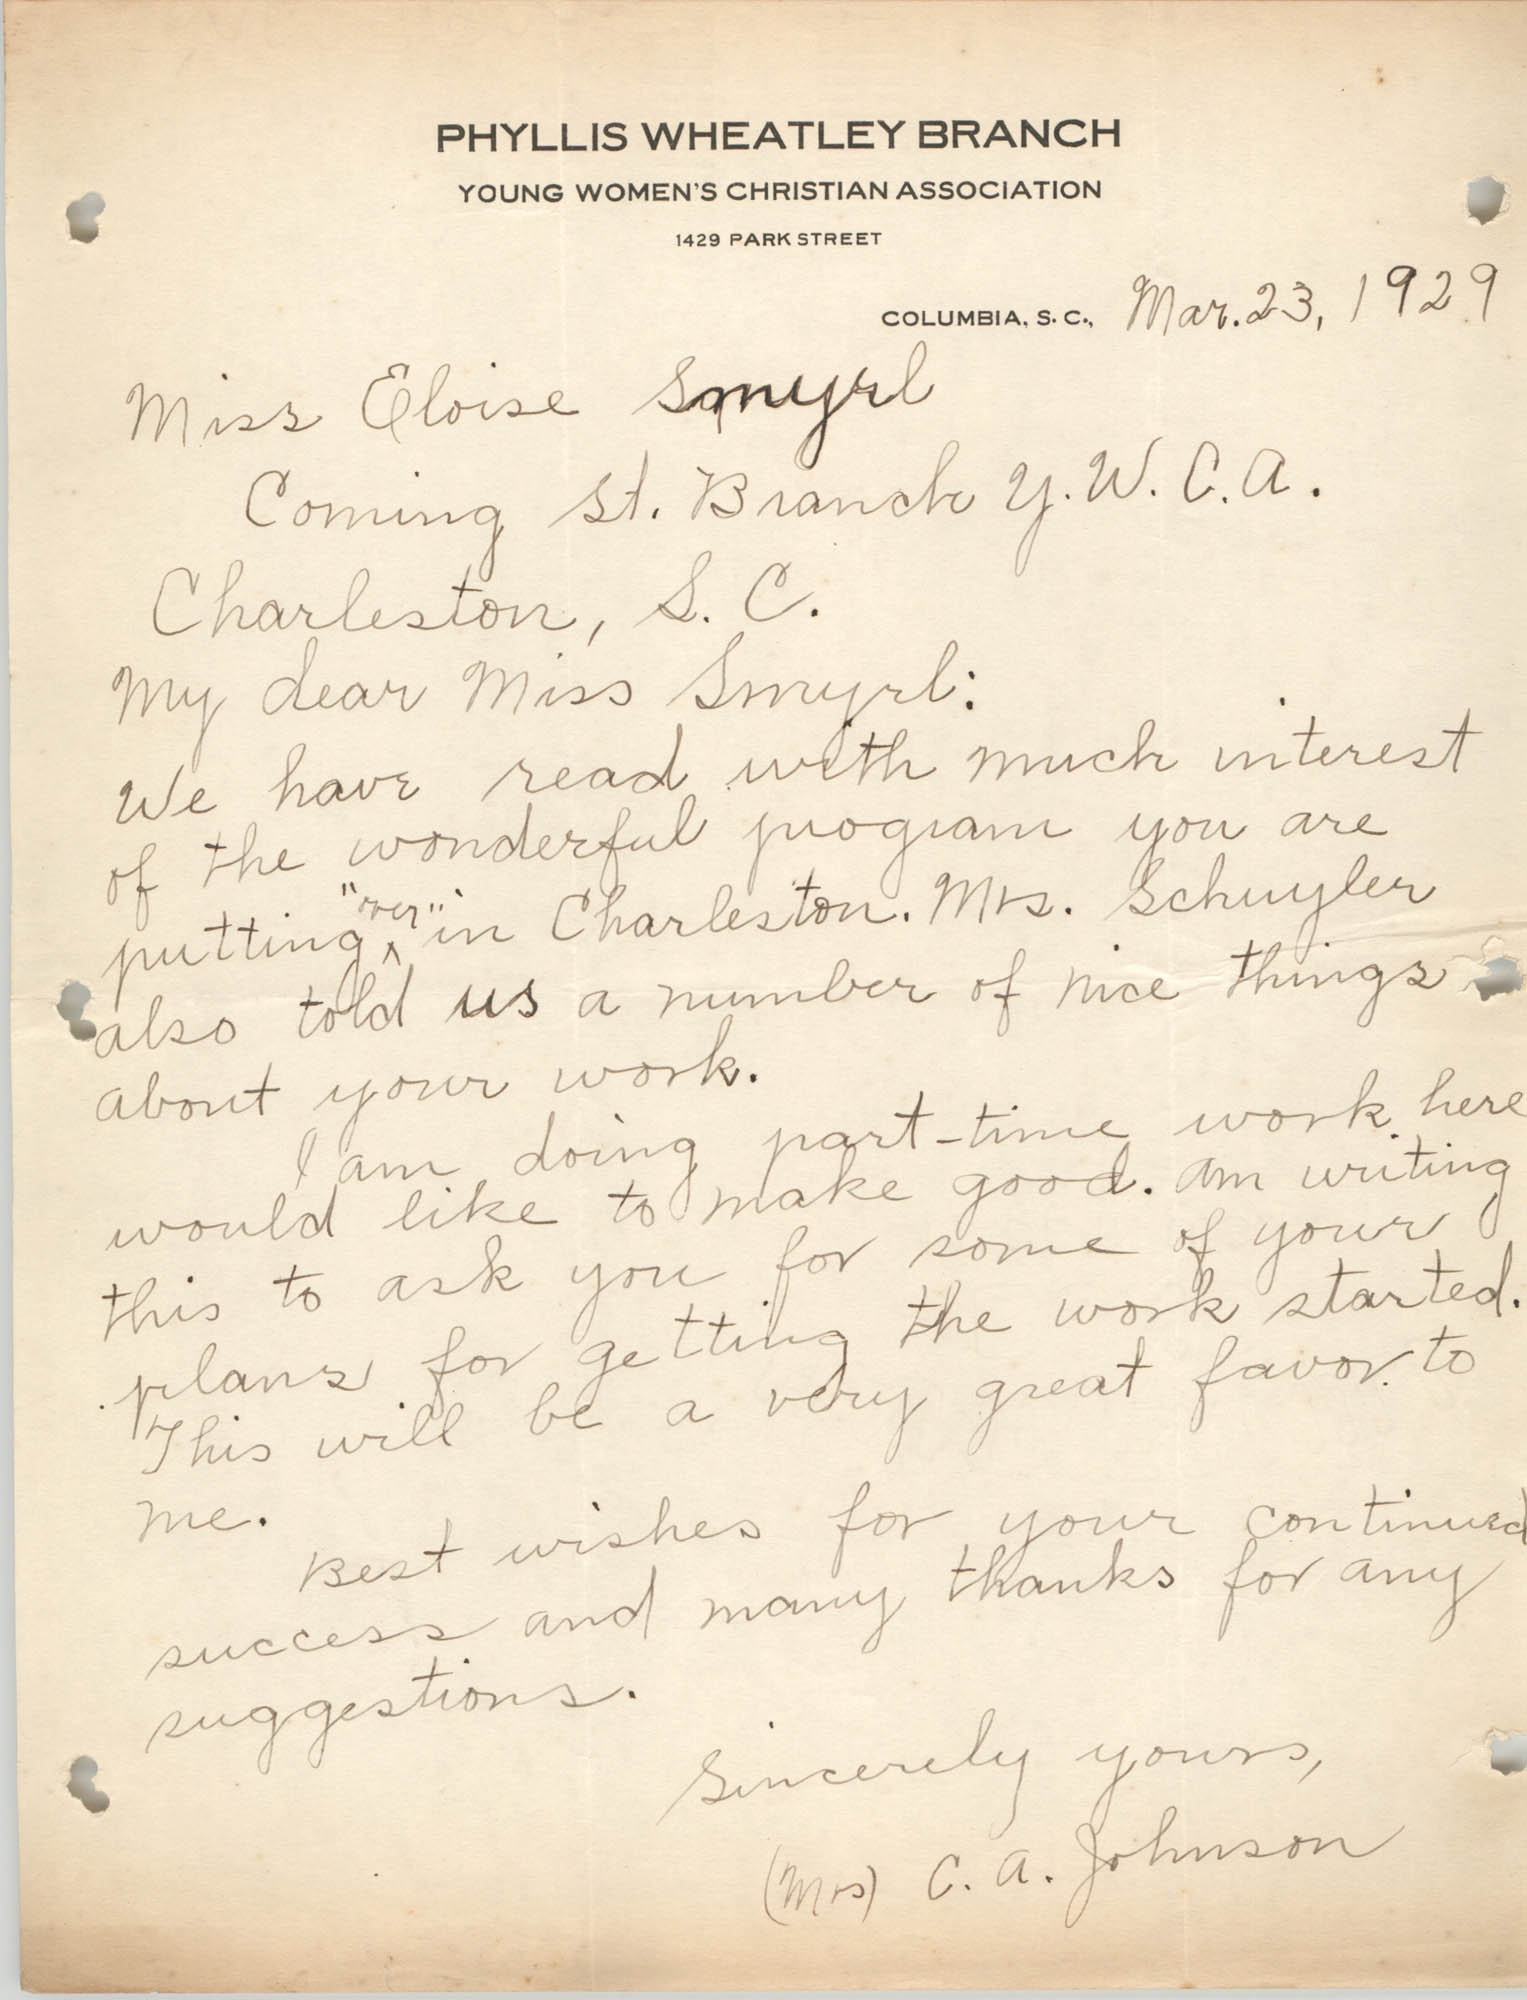 Letter from C. A. Johnson to Eloise Smyrl, March 23, 1929